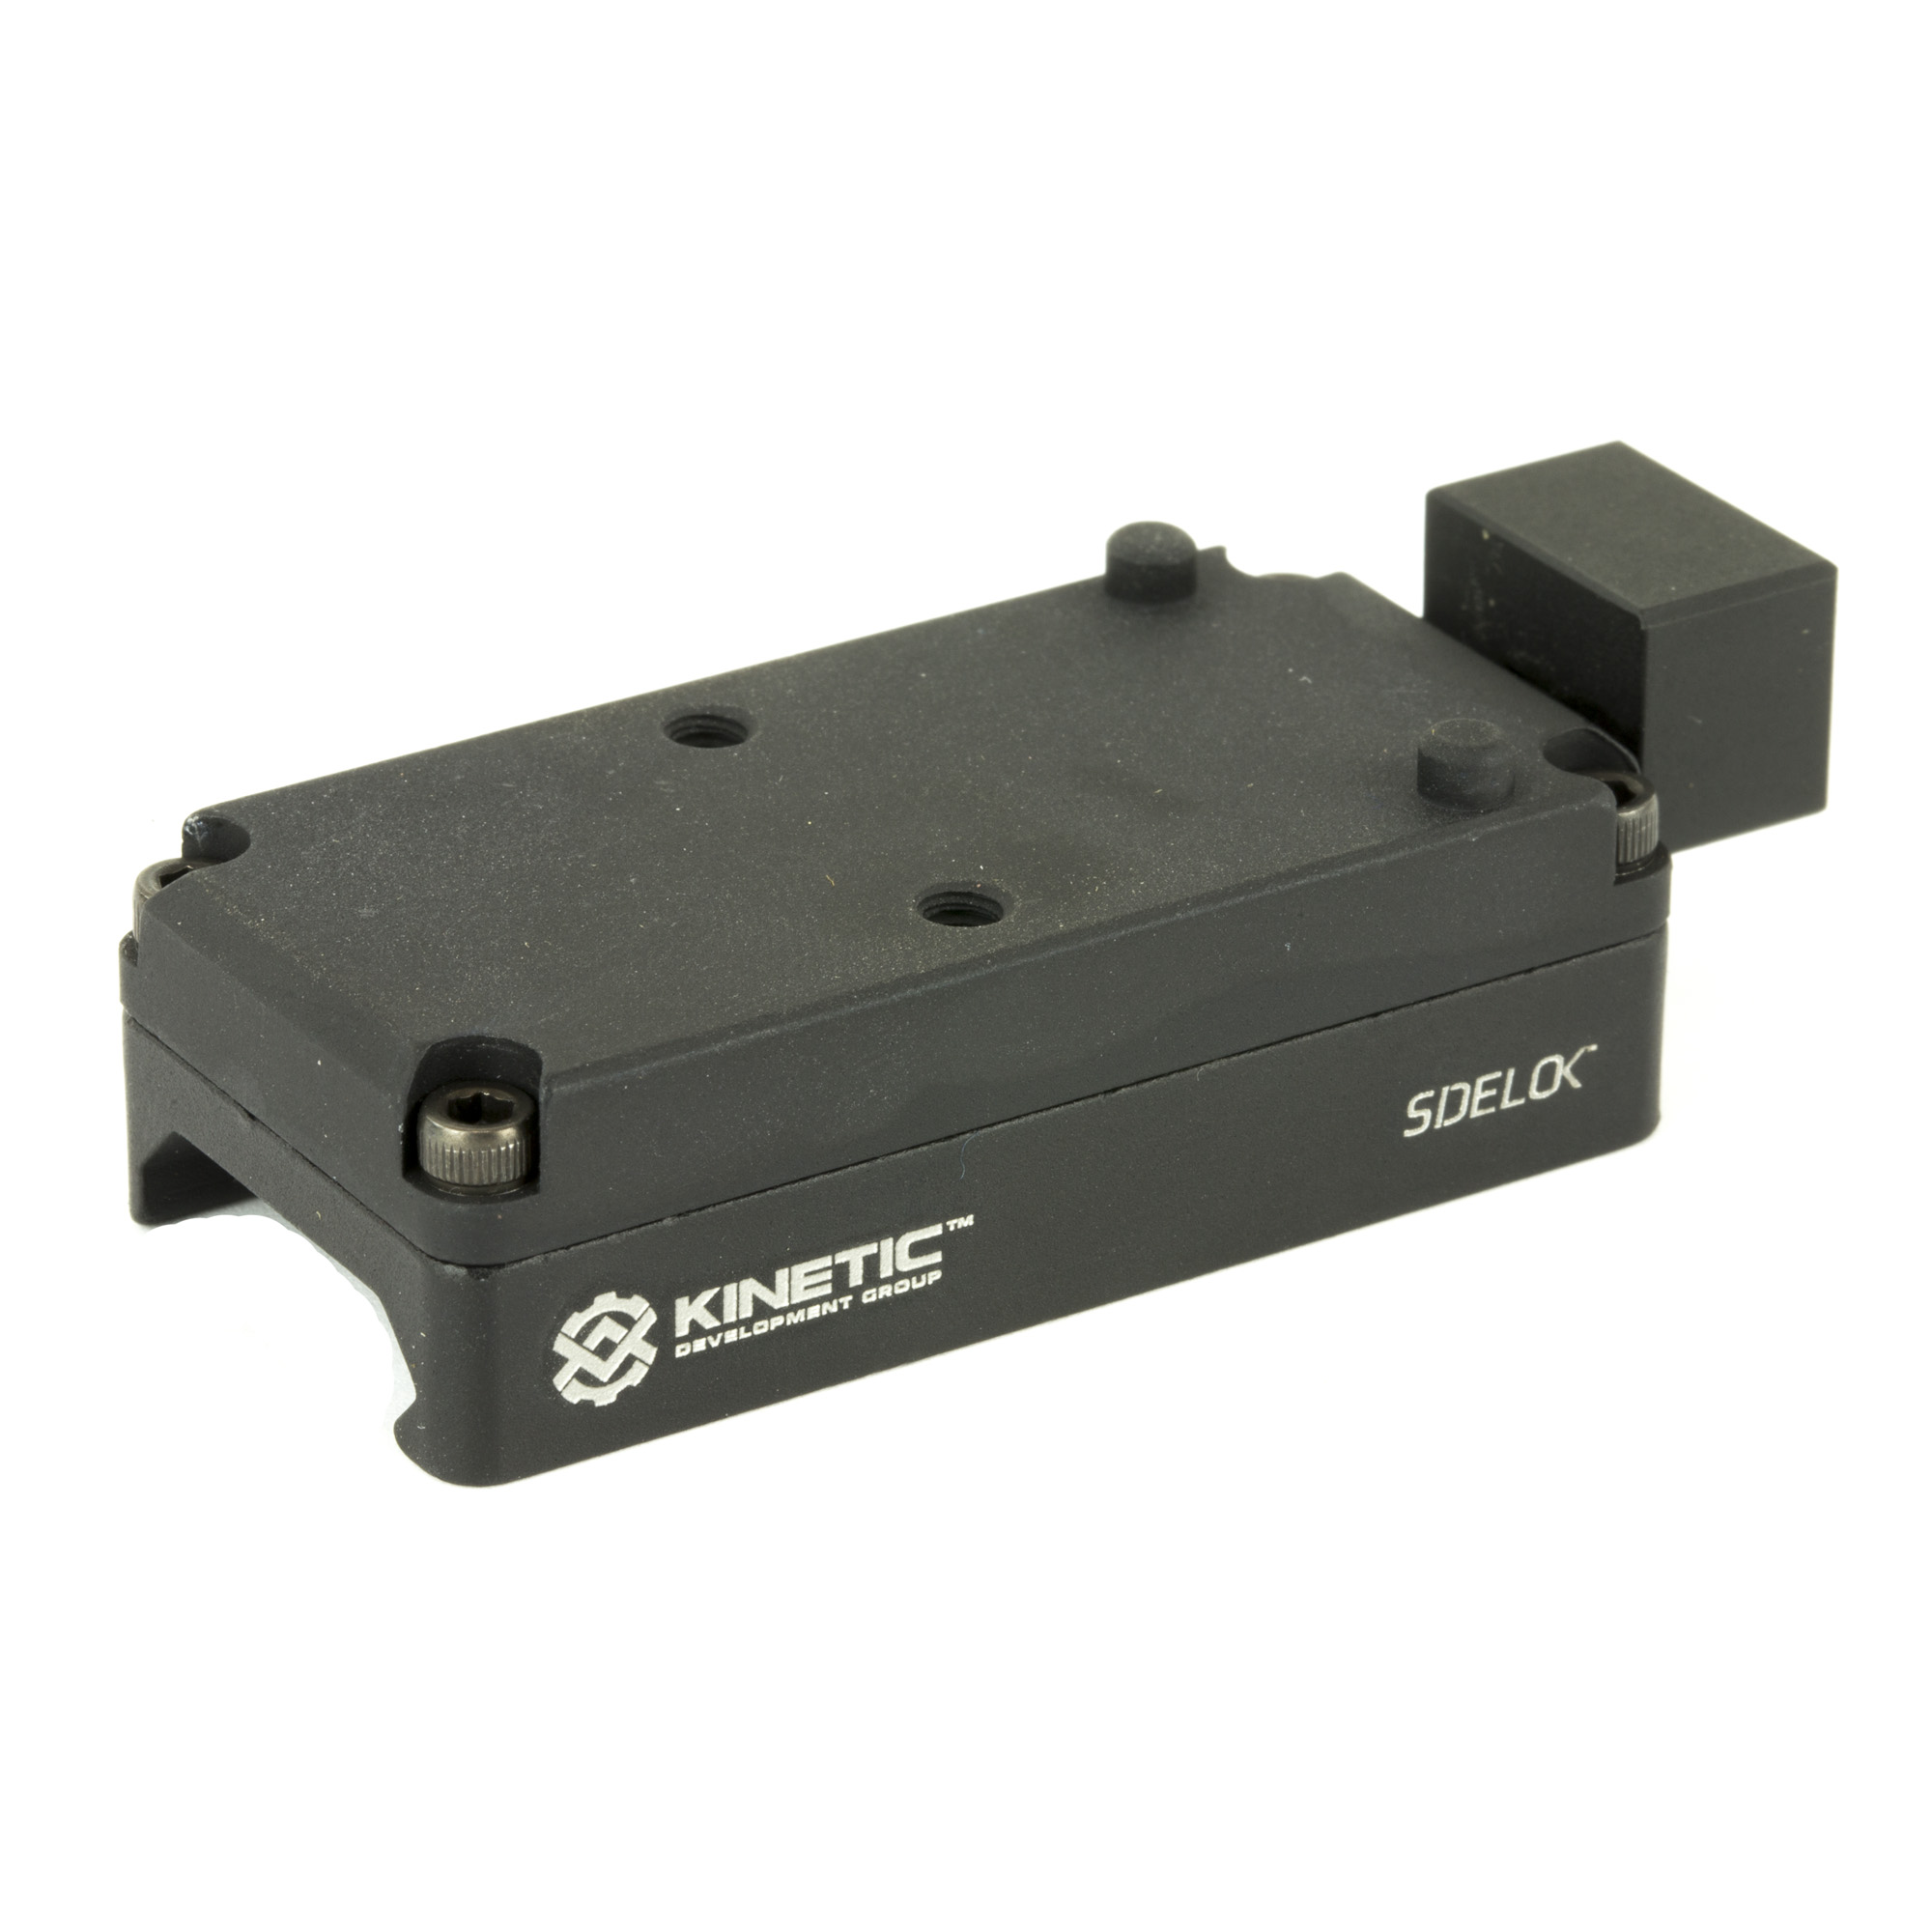 """The KDG RMR Low Profile Sidelok mount allows for the popular Trijicon RMR optic"""" and other brands that share the same mounting base to benefit from KDG Sidelok Technology! The lightweight"""" 2.4 oz. mount pairs with all models of RMR to carry an overall weight of 3.4 oz. assembled. Made from high strength billet 6061 aluminum"""" the Sidelok mount allows for instant attachment or detachment of the optic to the firearm. This is facilitated with no tools or adjustments"""" can be accomplished with one hand even while wearing gloves"""" and with 100% repeatable return to zero! The RMR Low Profile Sidelok mount is perfect for lightweight firearms and those that swap optics out for different shooting environments. This mount does not offer co-witness with any AR-15 style iron sights"""" but will provide a lower profile setup for those using the mount on shotguns"""" AK-47s"""" submachine guns"""" belt-fed weapon systems"""" etc."""